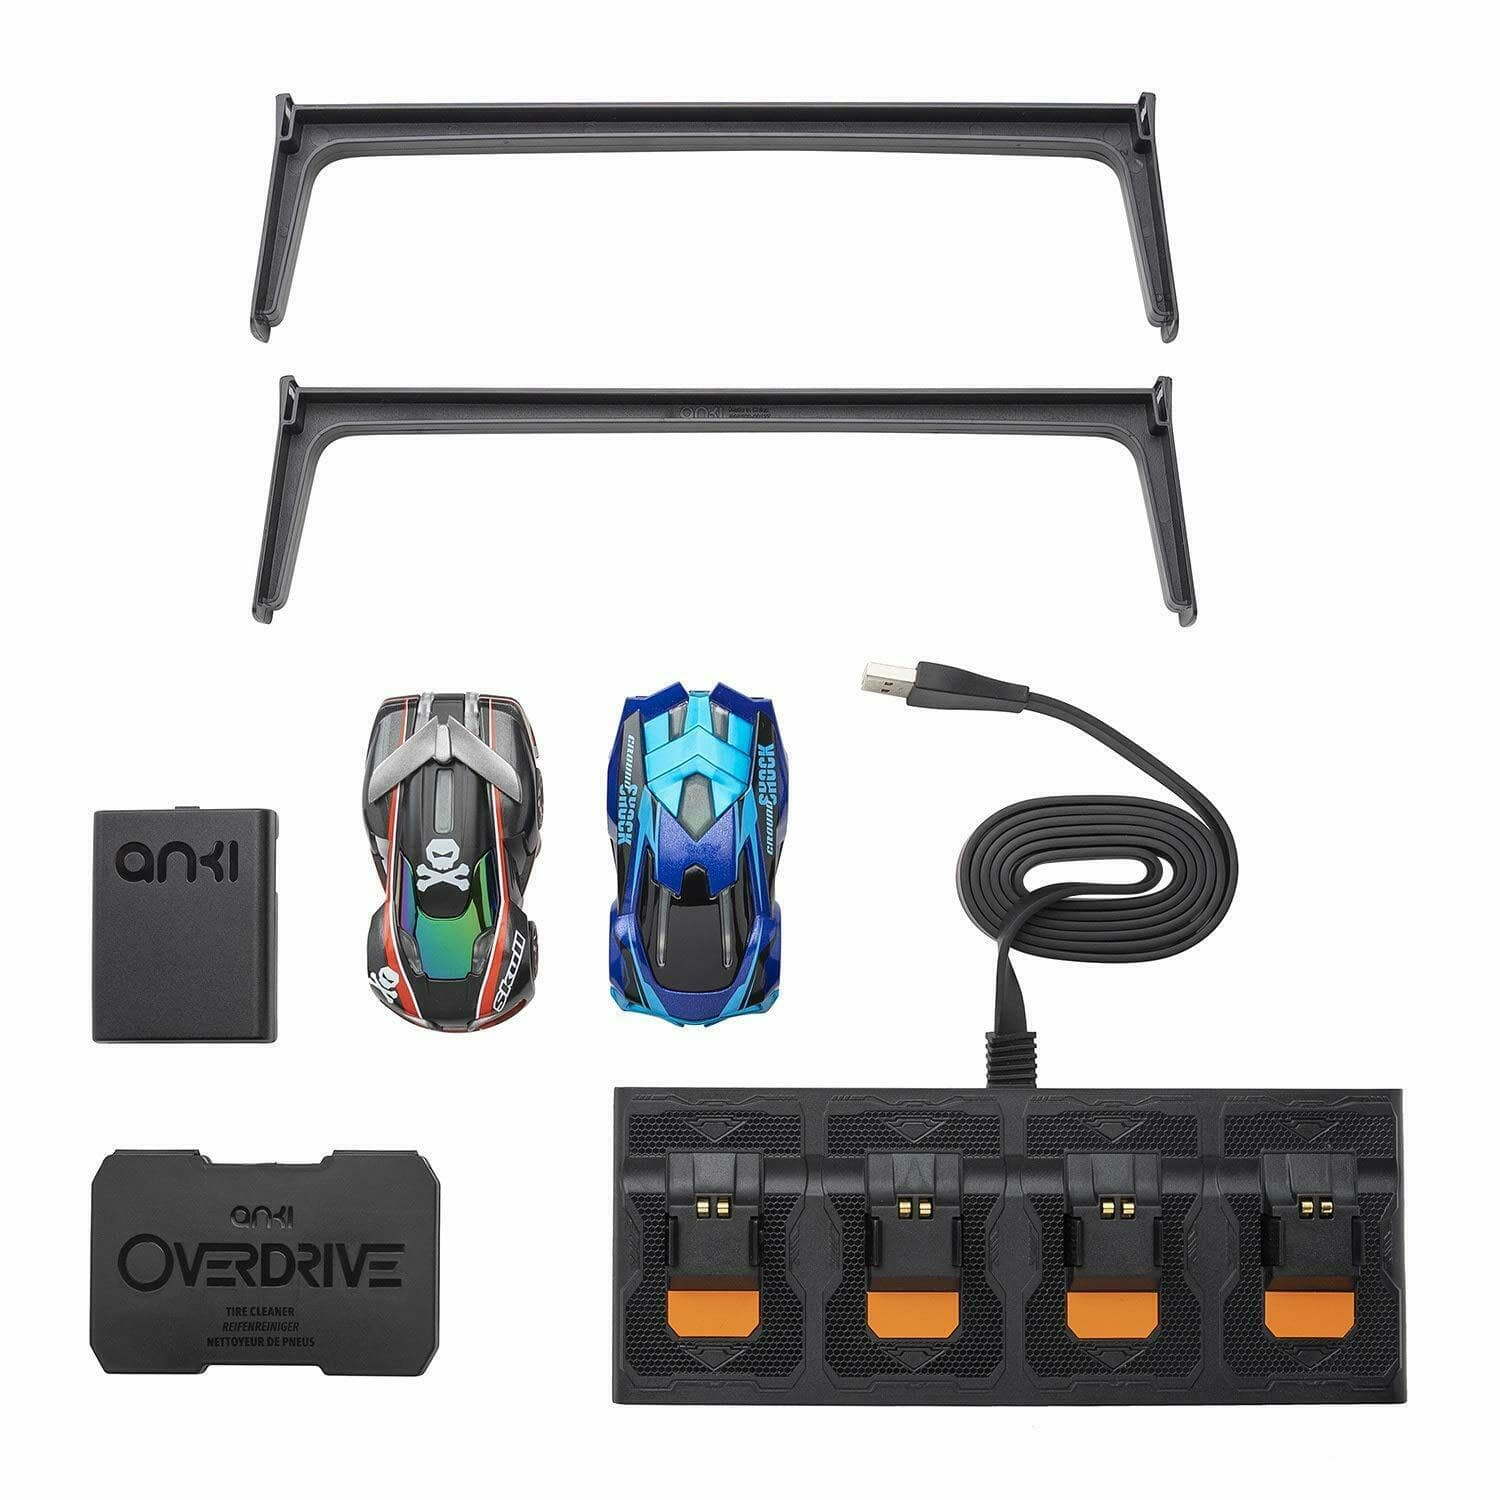 Anki Overdrive Starter Kit Includes 2 Racing Cars Charger Platform Tire Cleaner $20